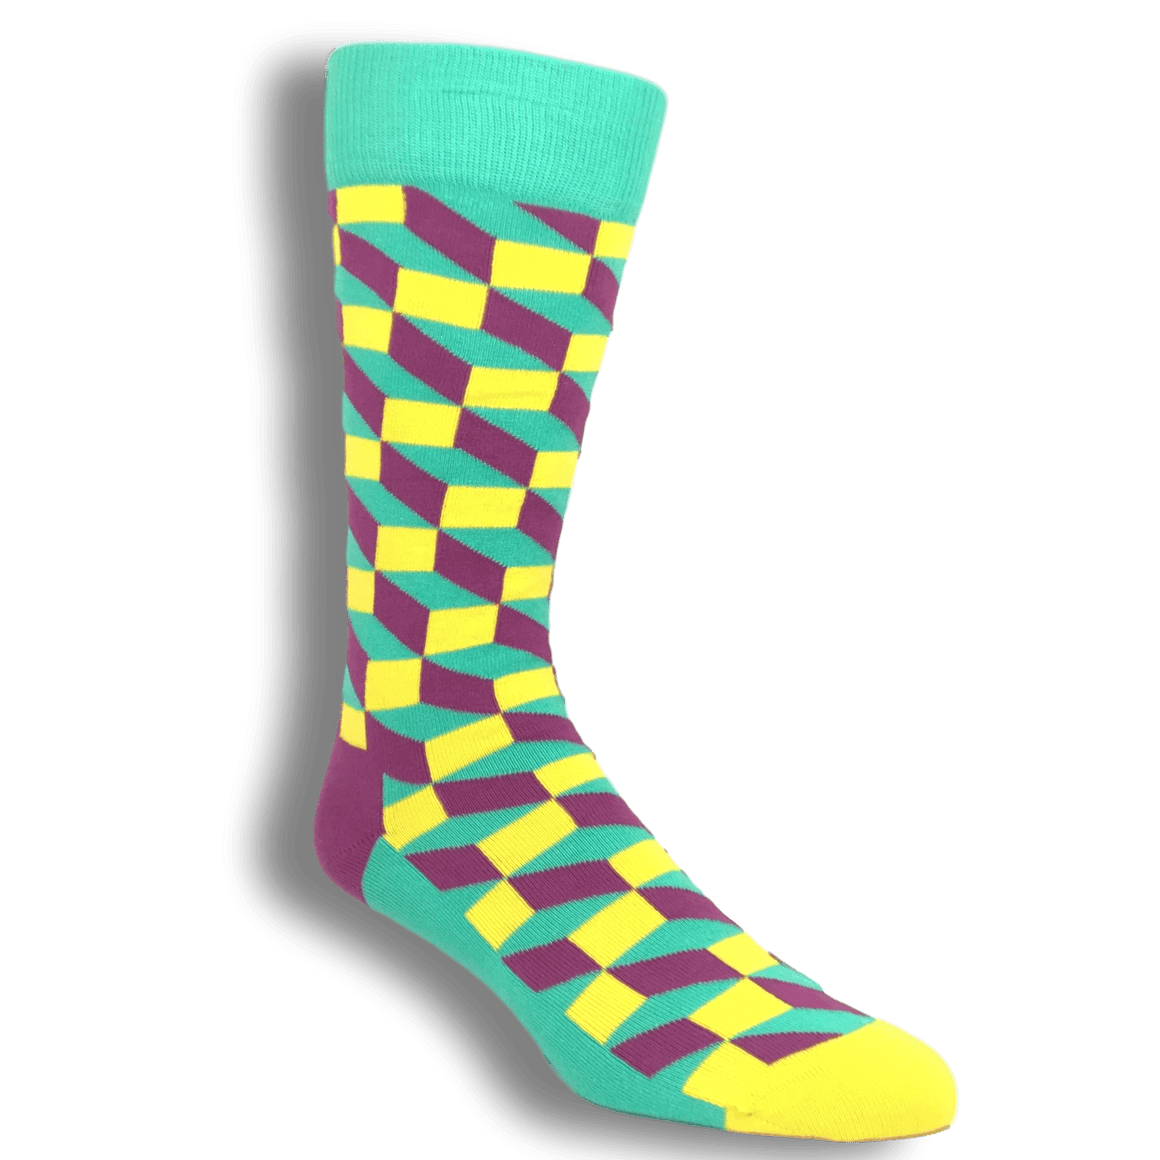 Teal, Yellow, and Pink Filled Optic Socks by Happy Socks - The Sock Spot